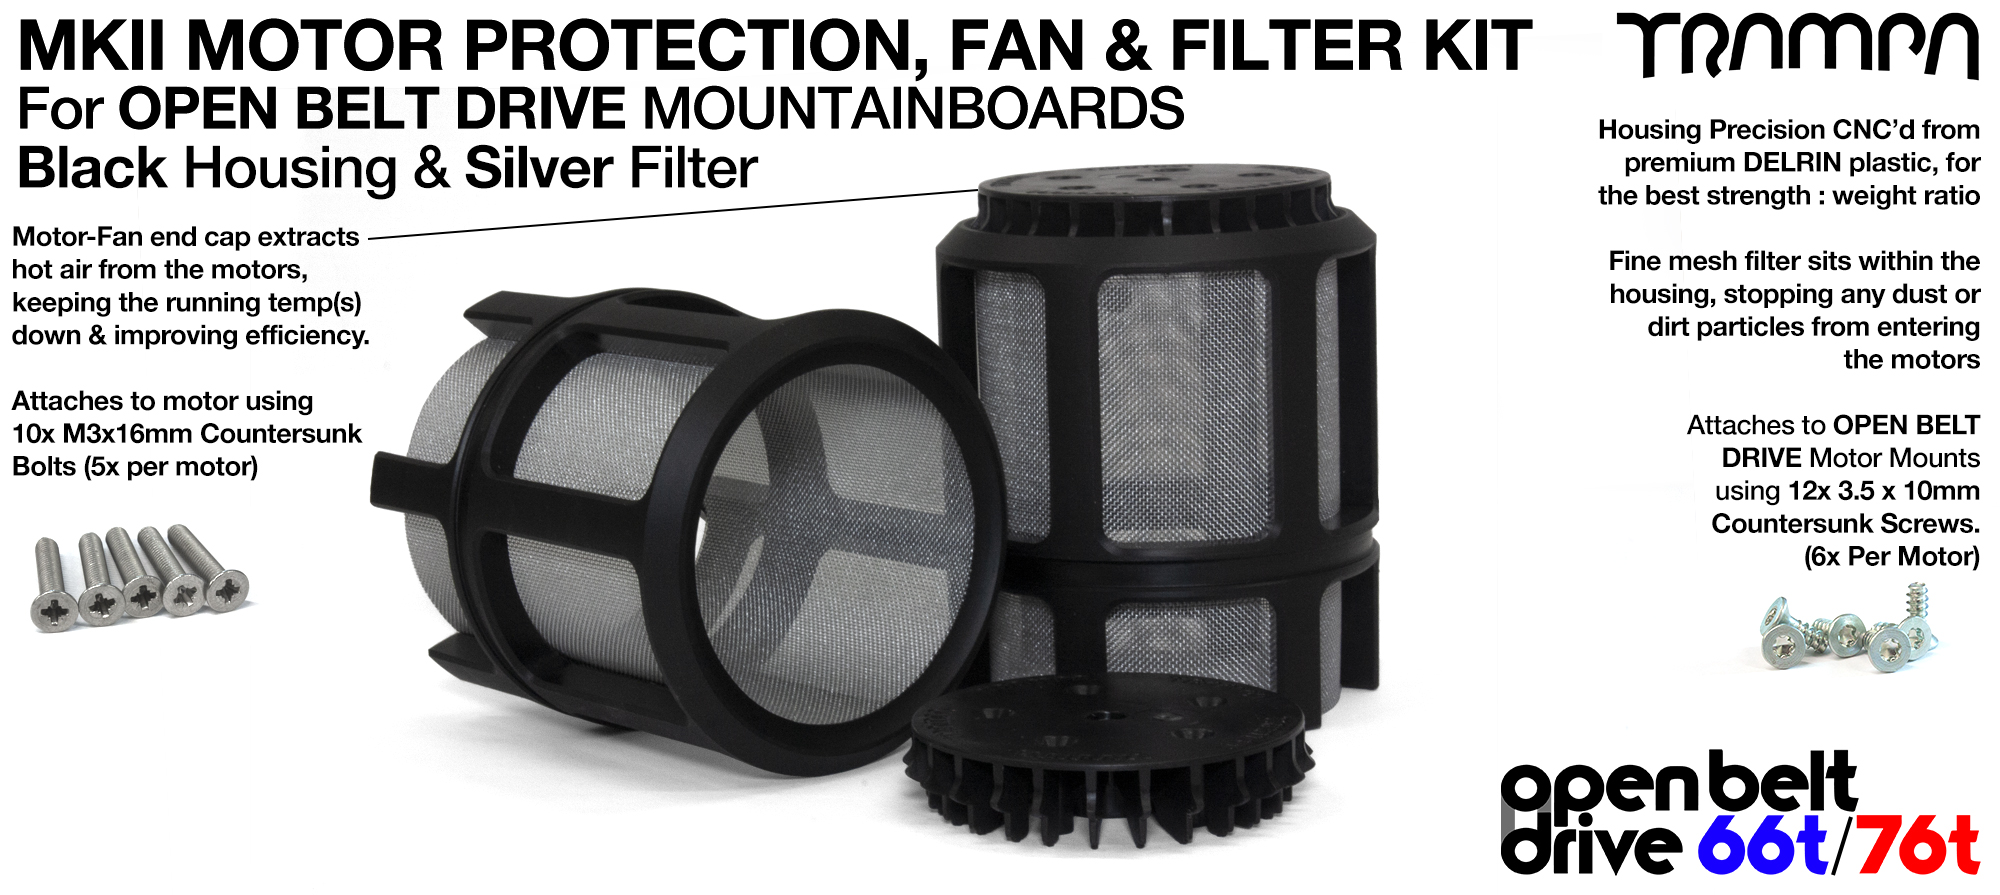 SILVER Mesh Filter in Motor Protection Cage with Fan (+£60)